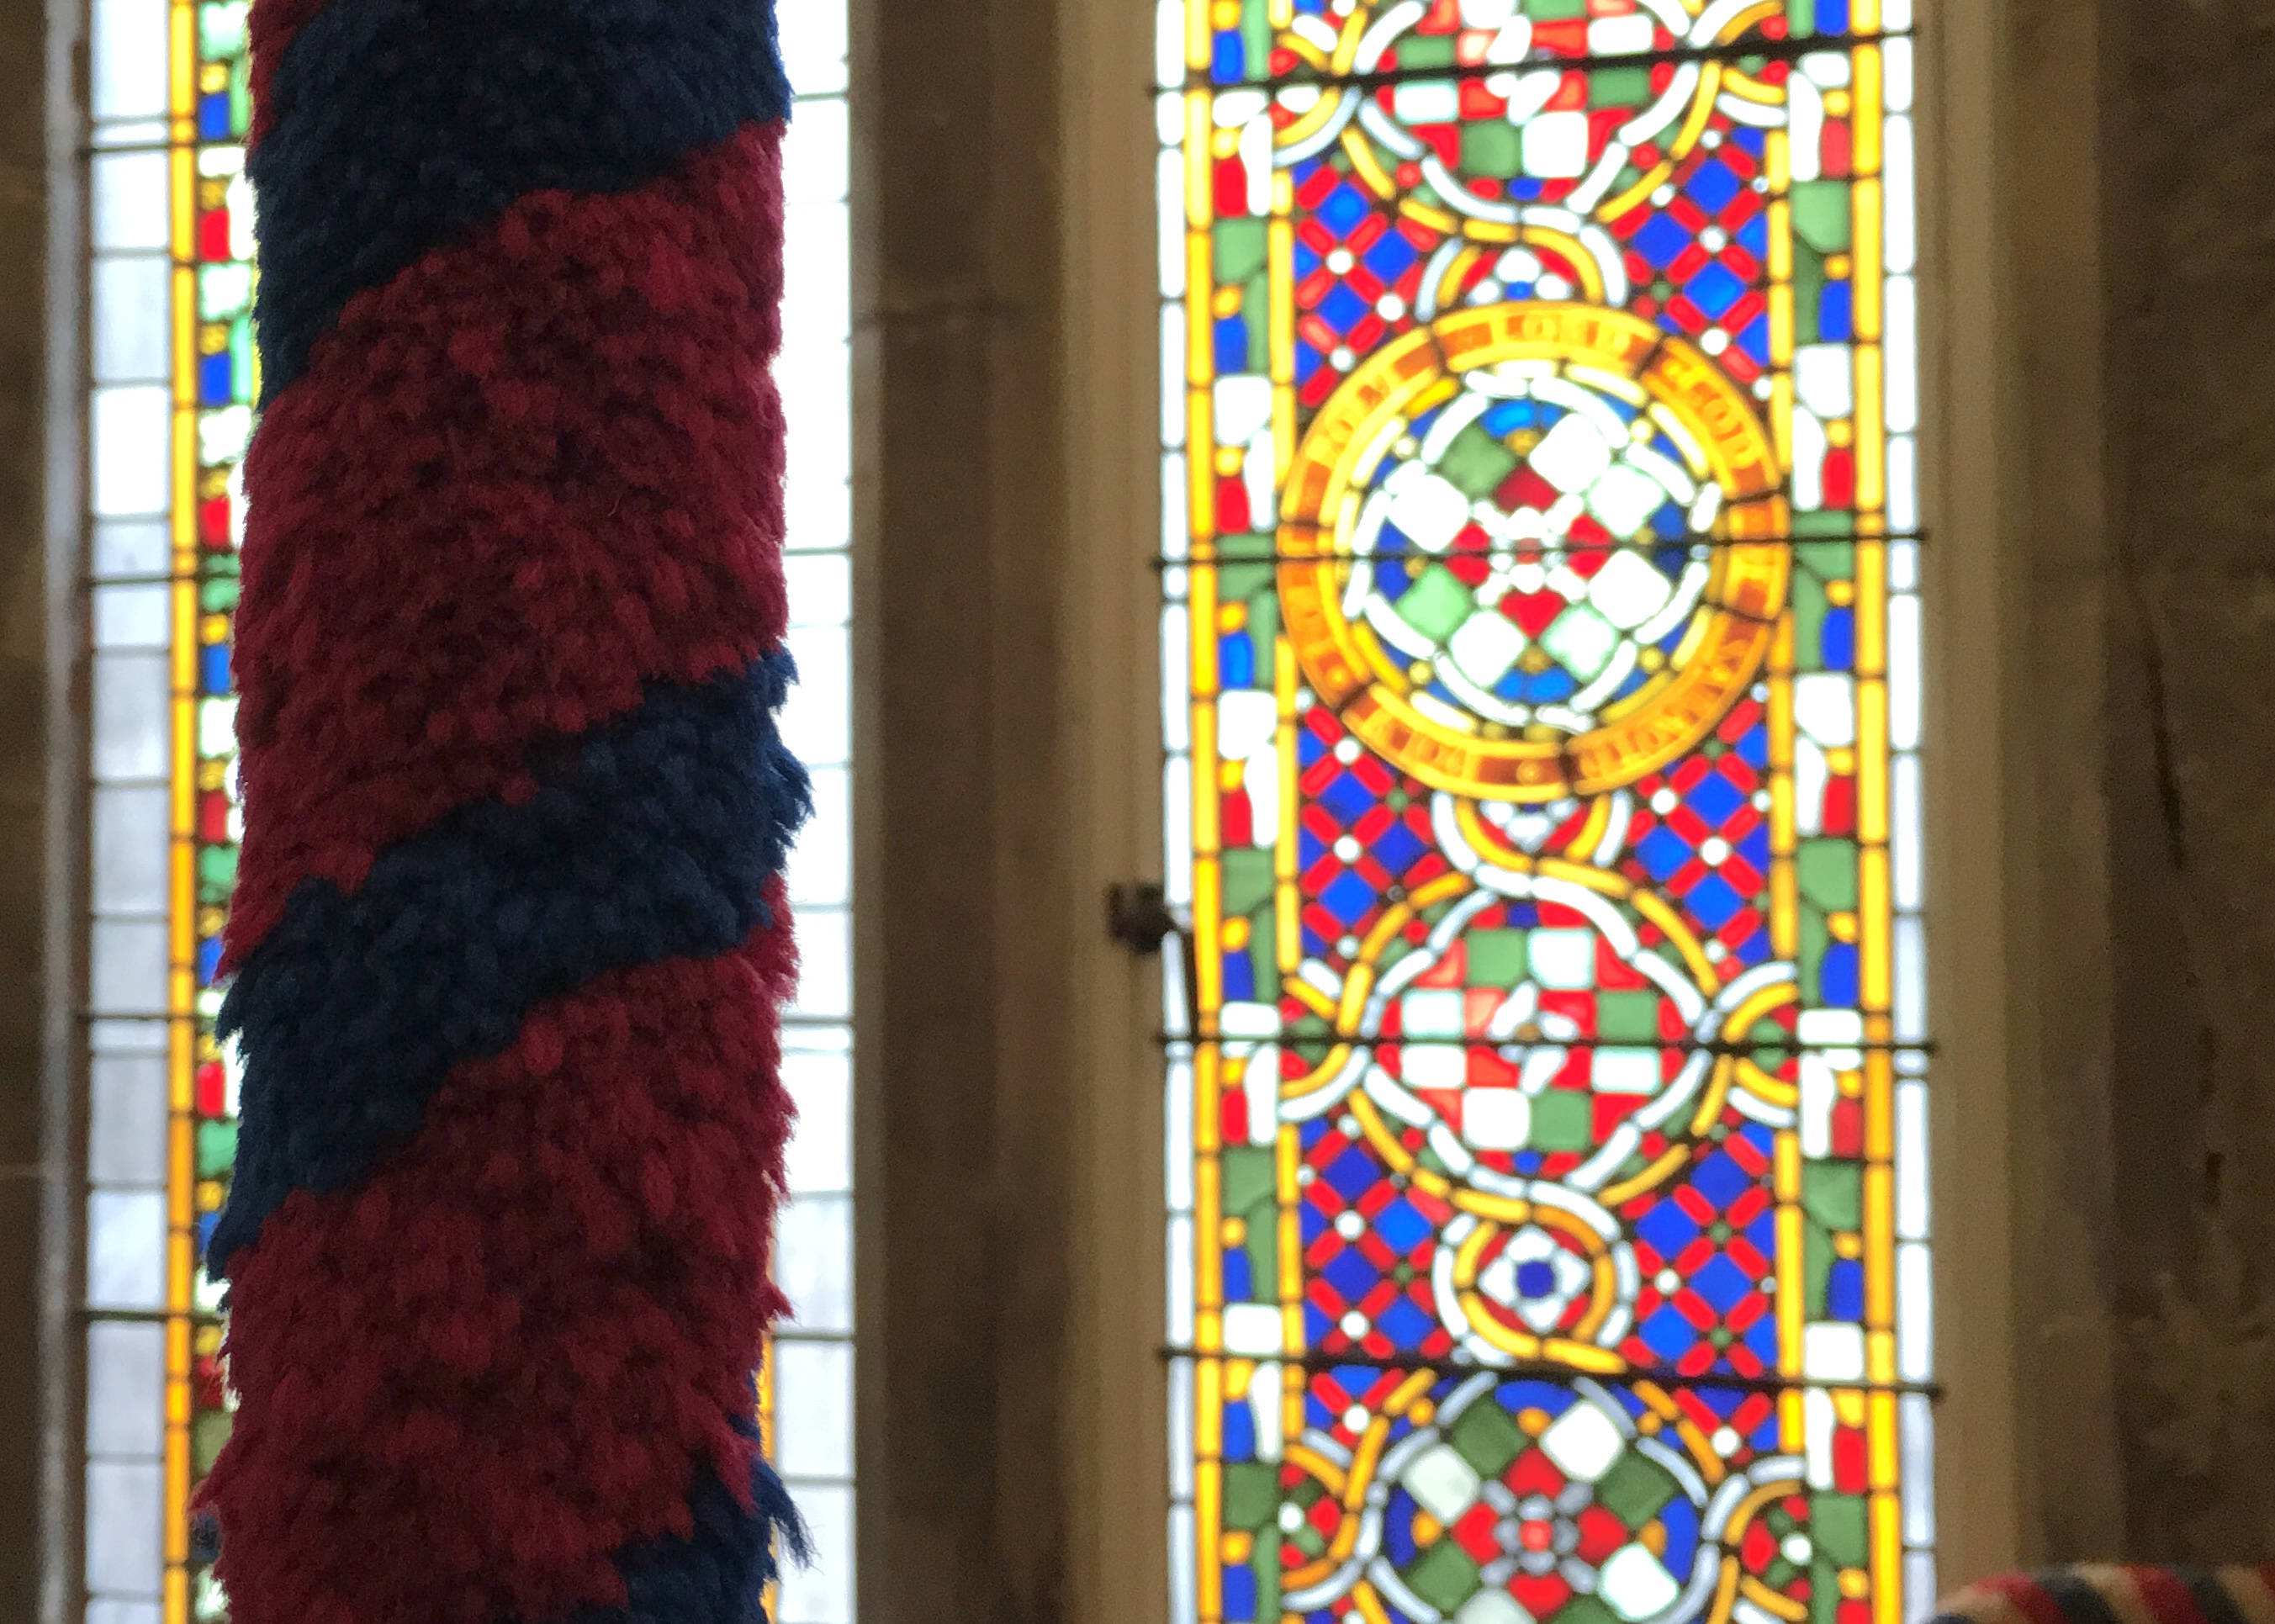 A colorful woolen sally from a bell rope in the foreground, with a stained glass window in the background.